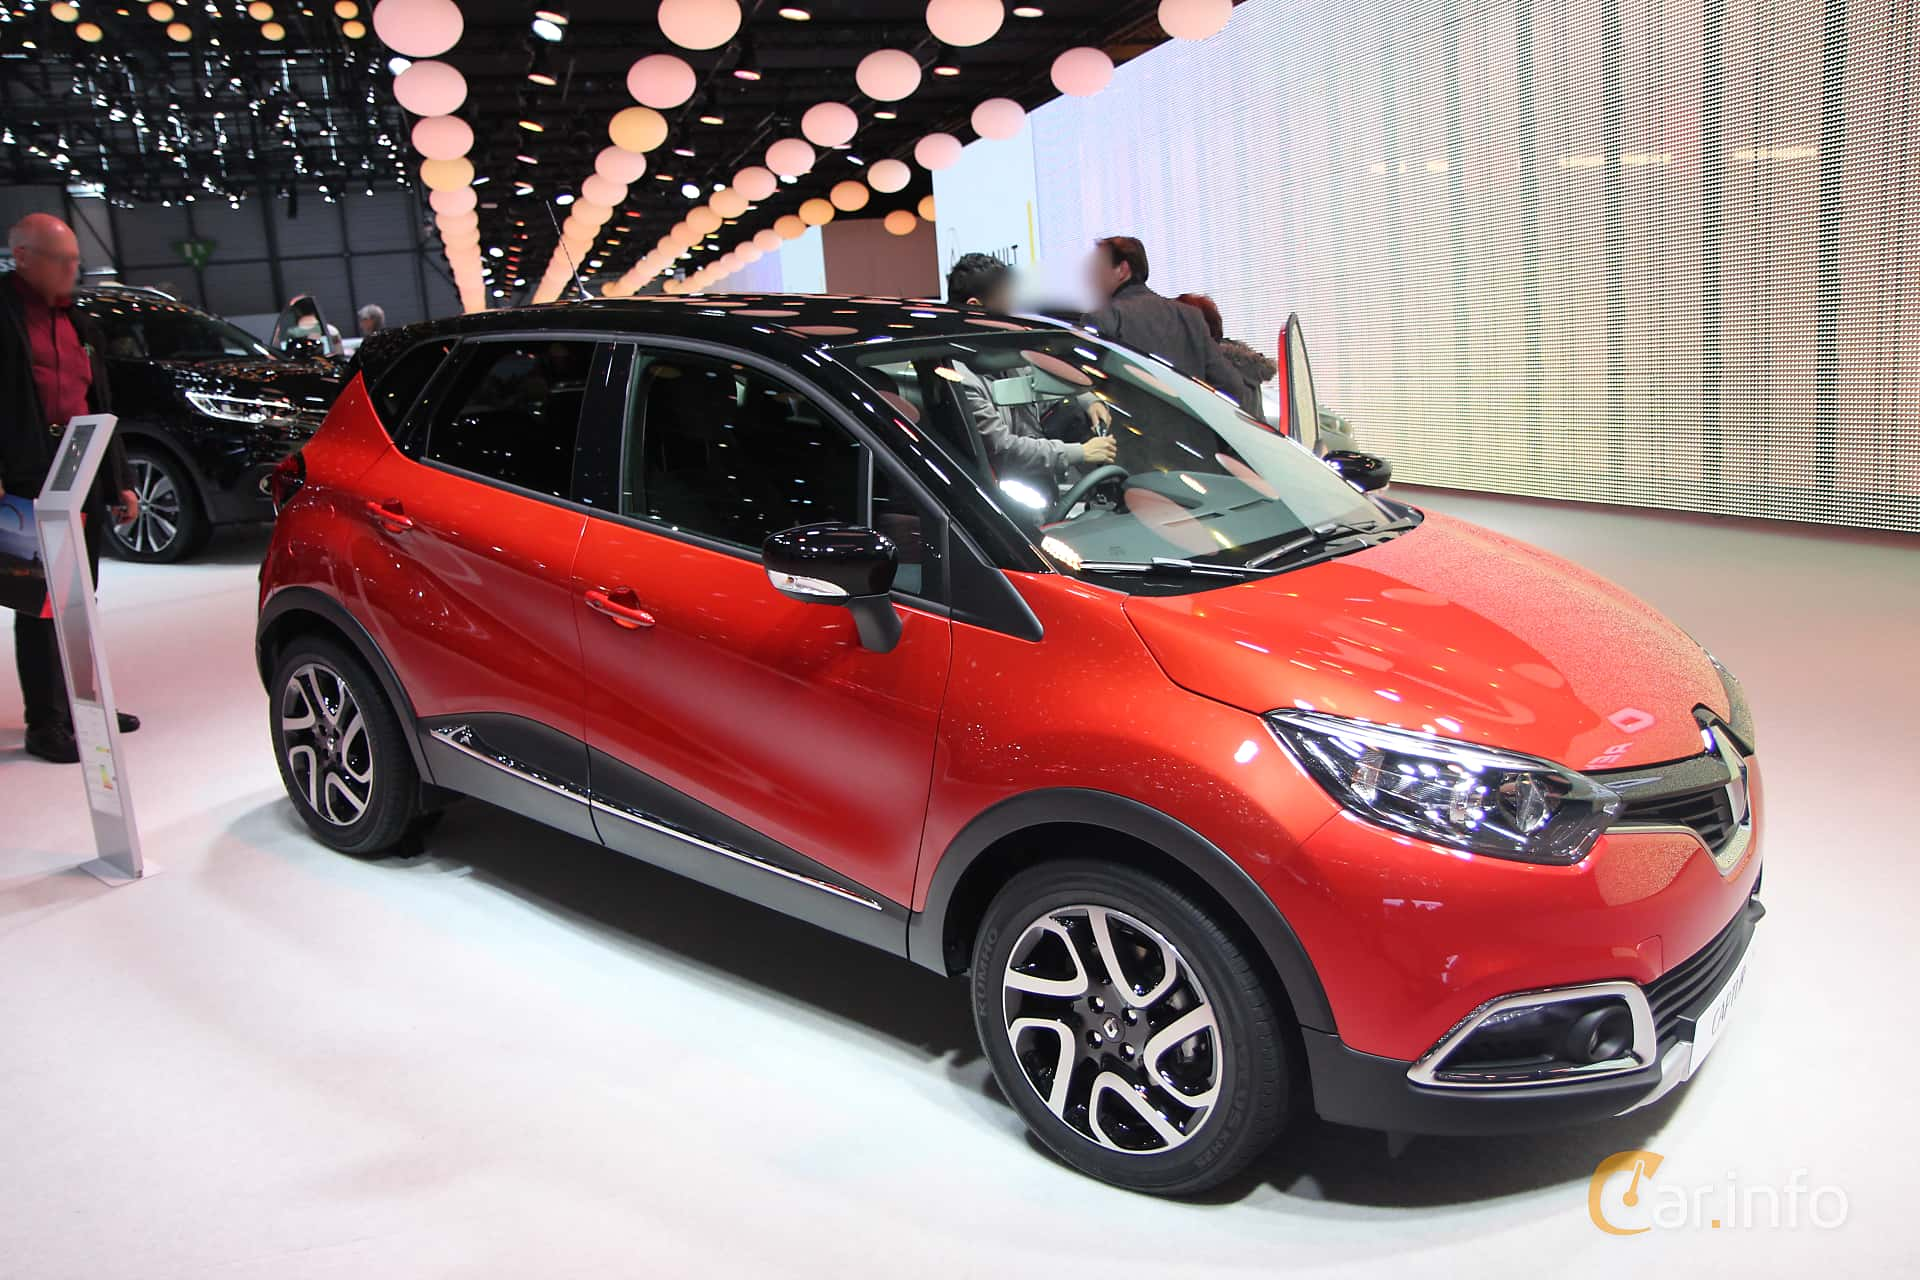 renault captur 1 2 tce manual 120hp 2015. Black Bedroom Furniture Sets. Home Design Ideas